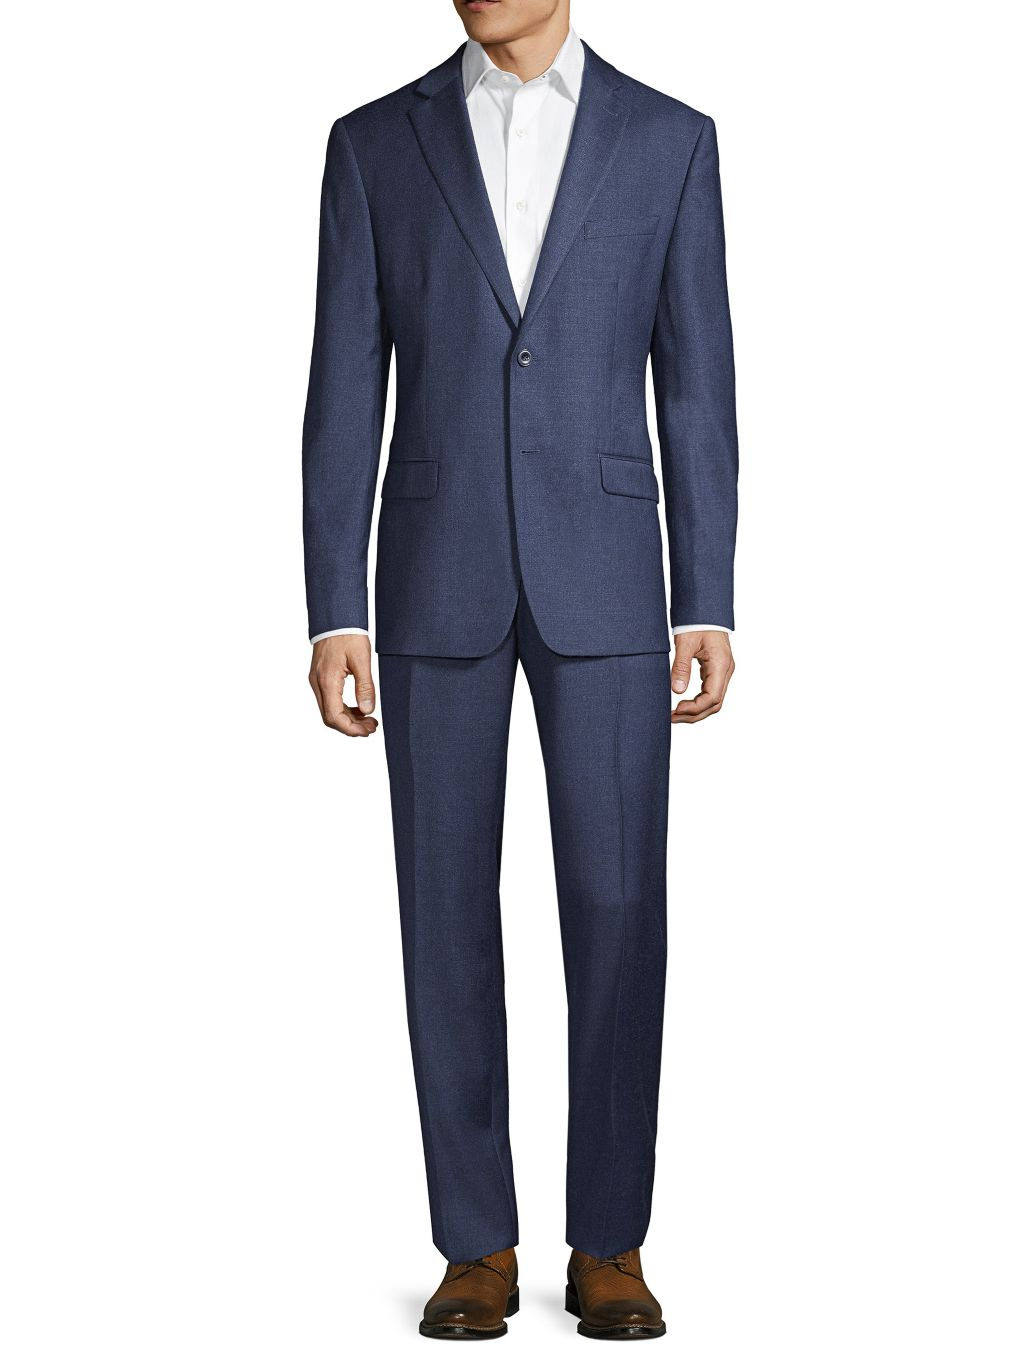 Michael Kors Collection Standard-Fit Textured Solid Wool-Blend Suit